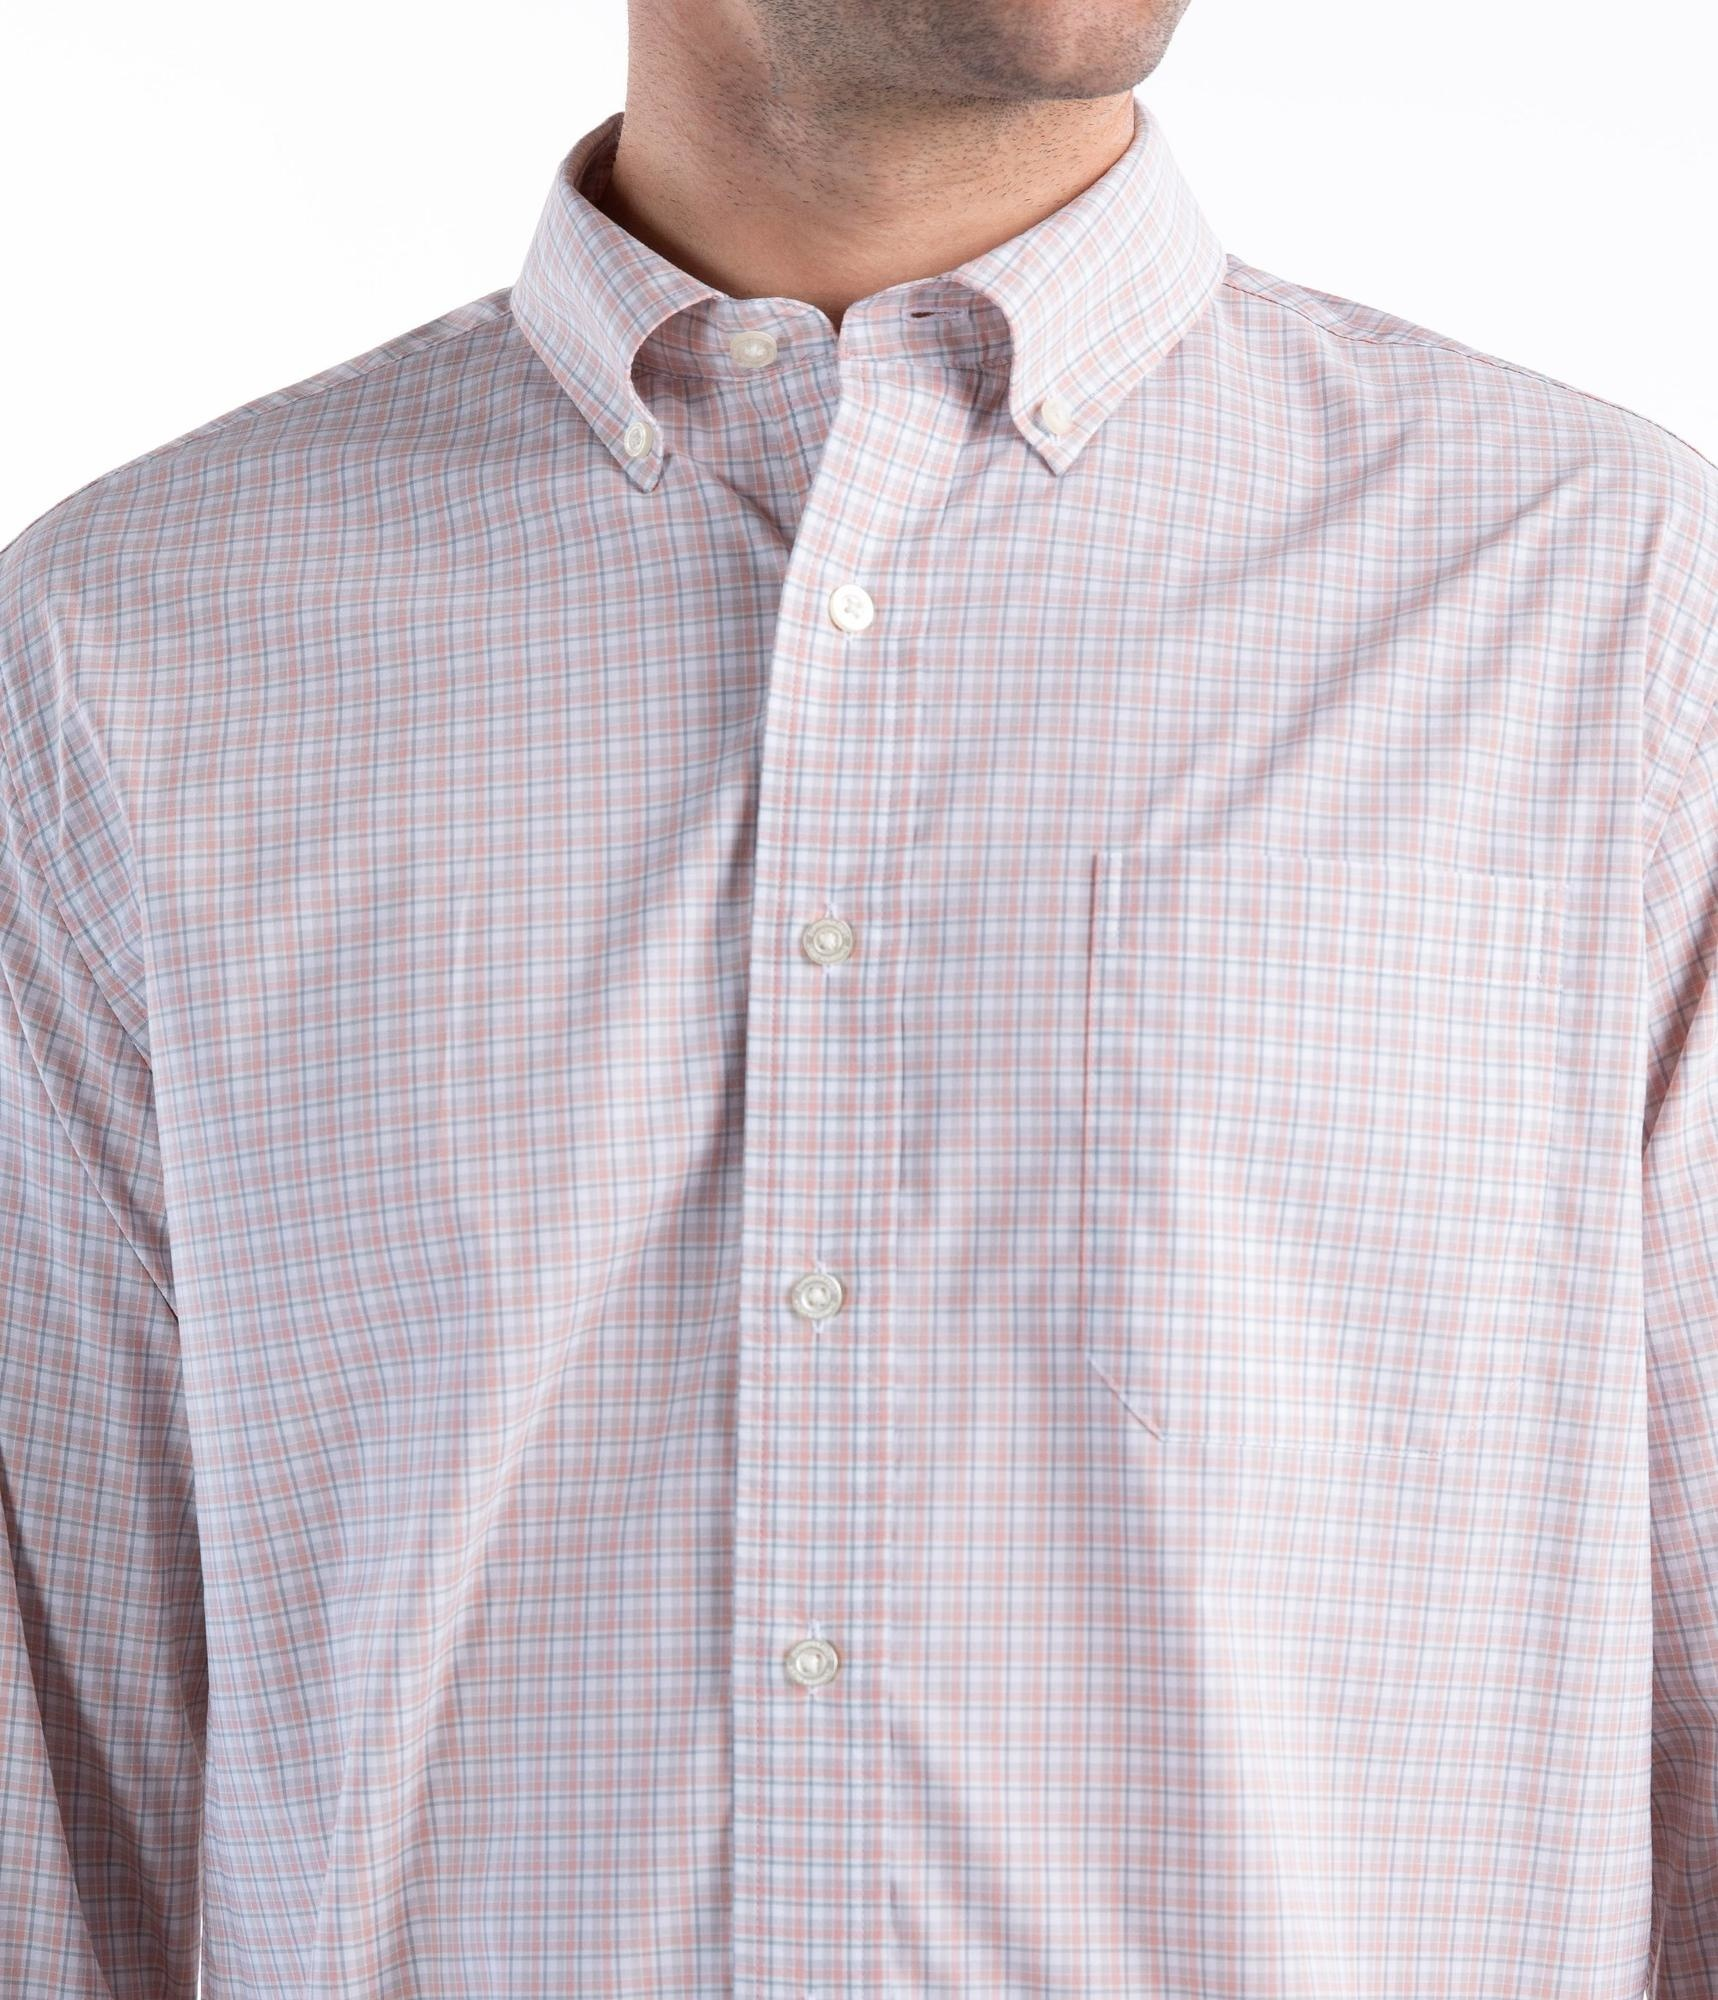 Southern Shirt Daphne Plaid  Dress Shirt